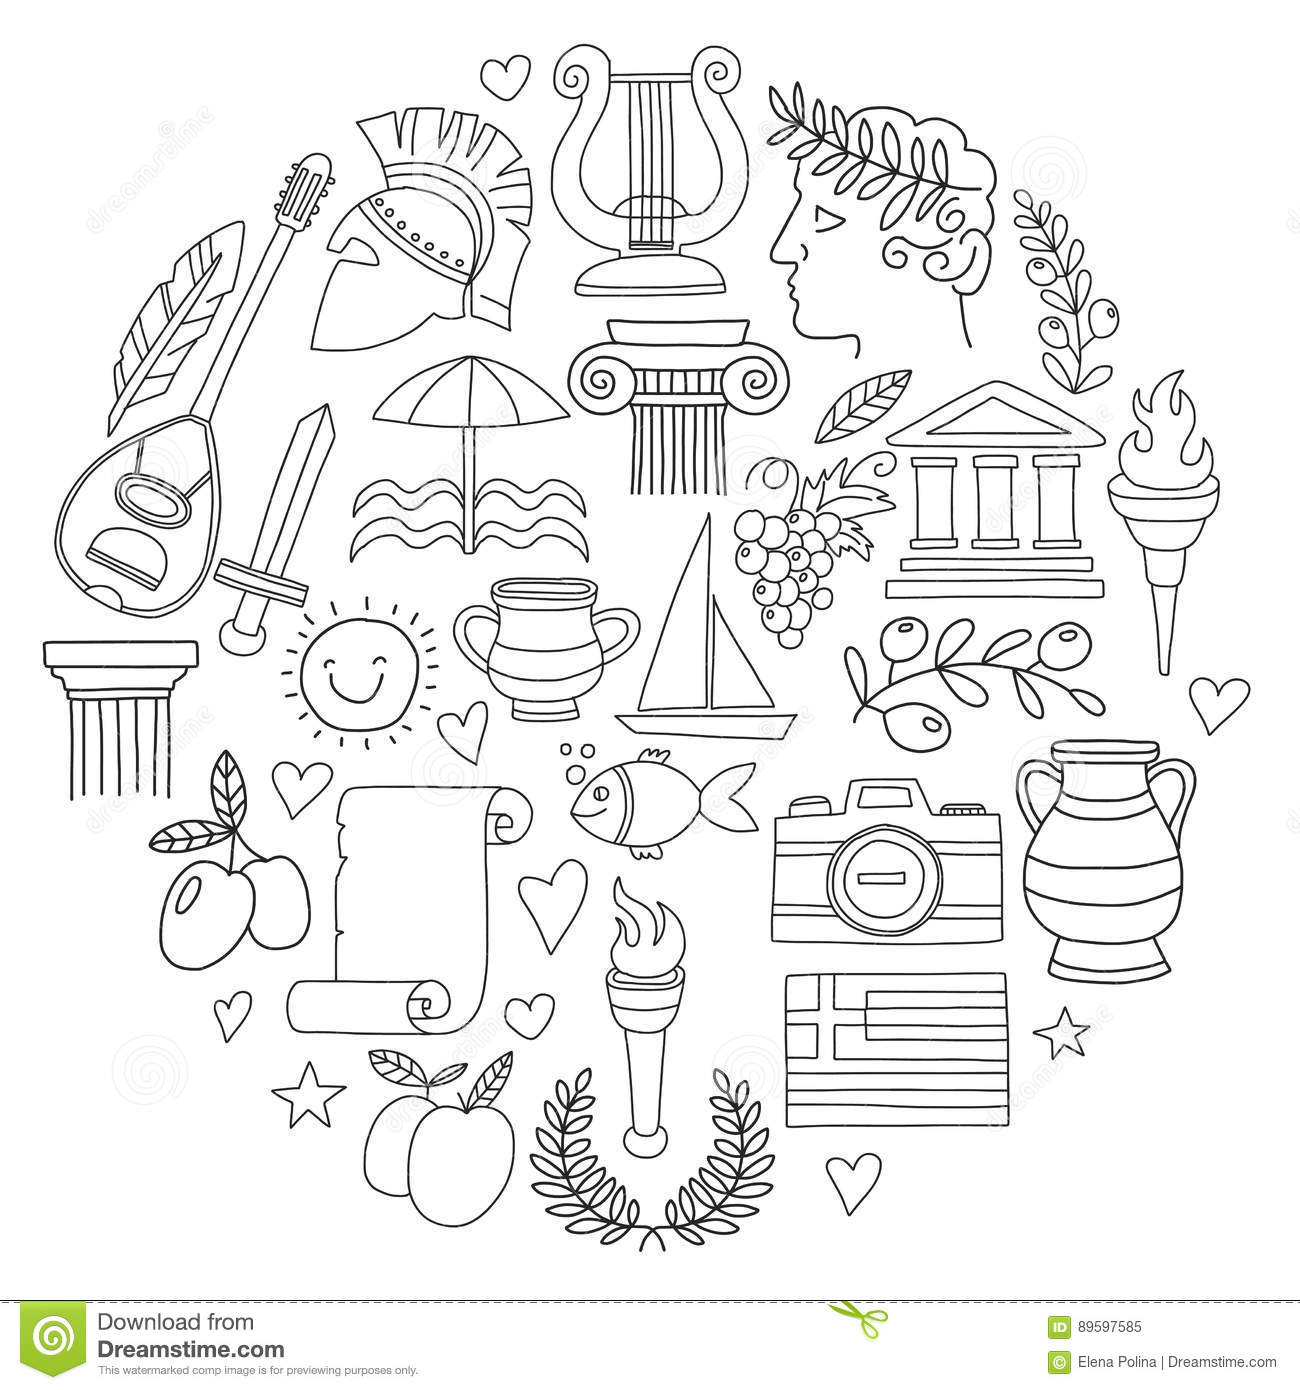 coloring pages wine food animals people | Ancient Greece Vector Elements In Doodle Style For ...